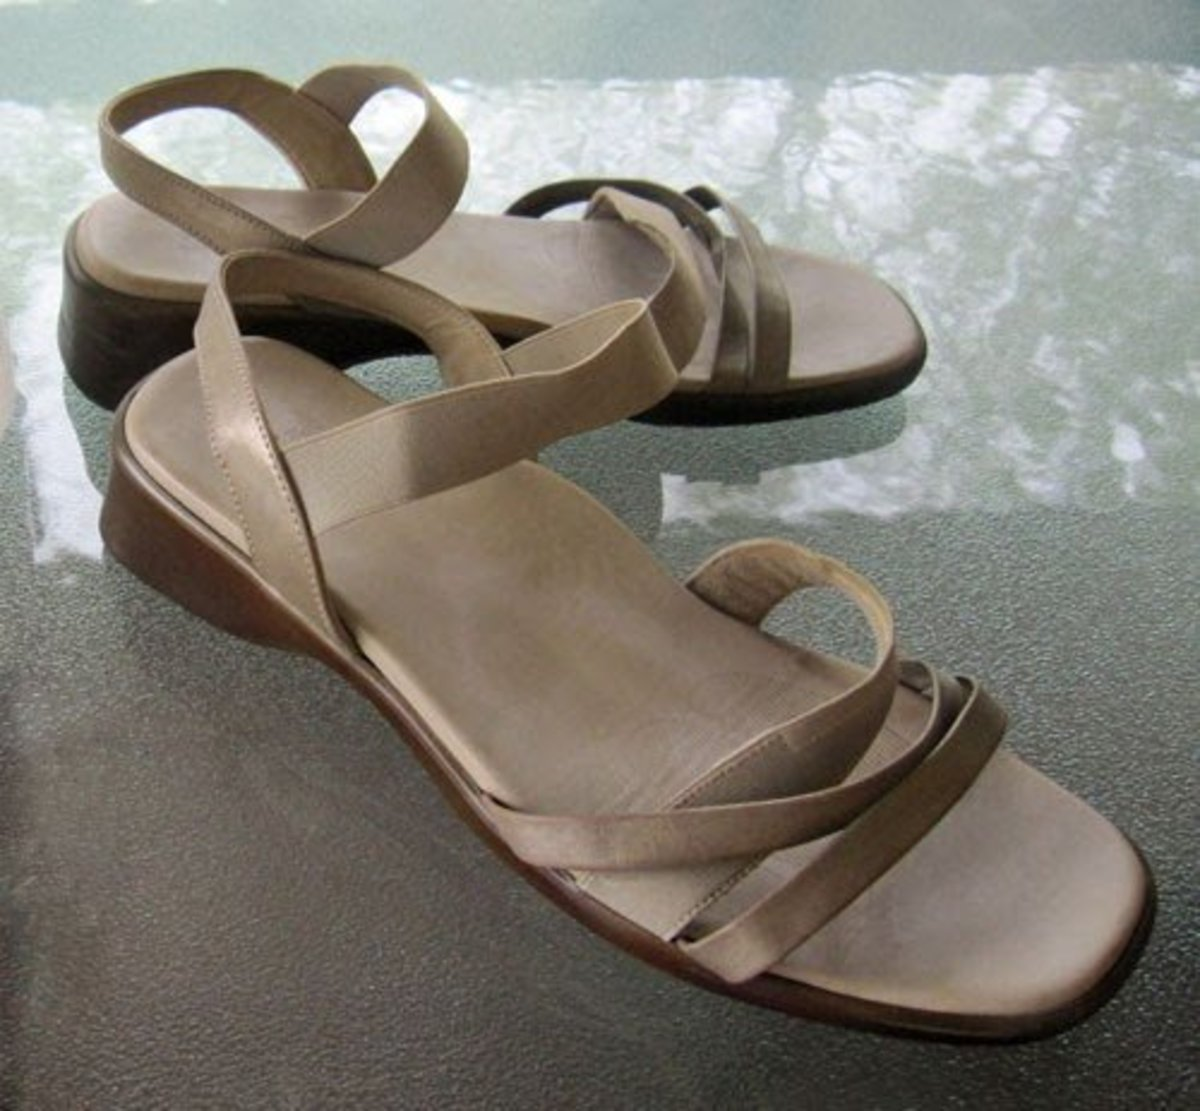 Before: The unpainted sandal